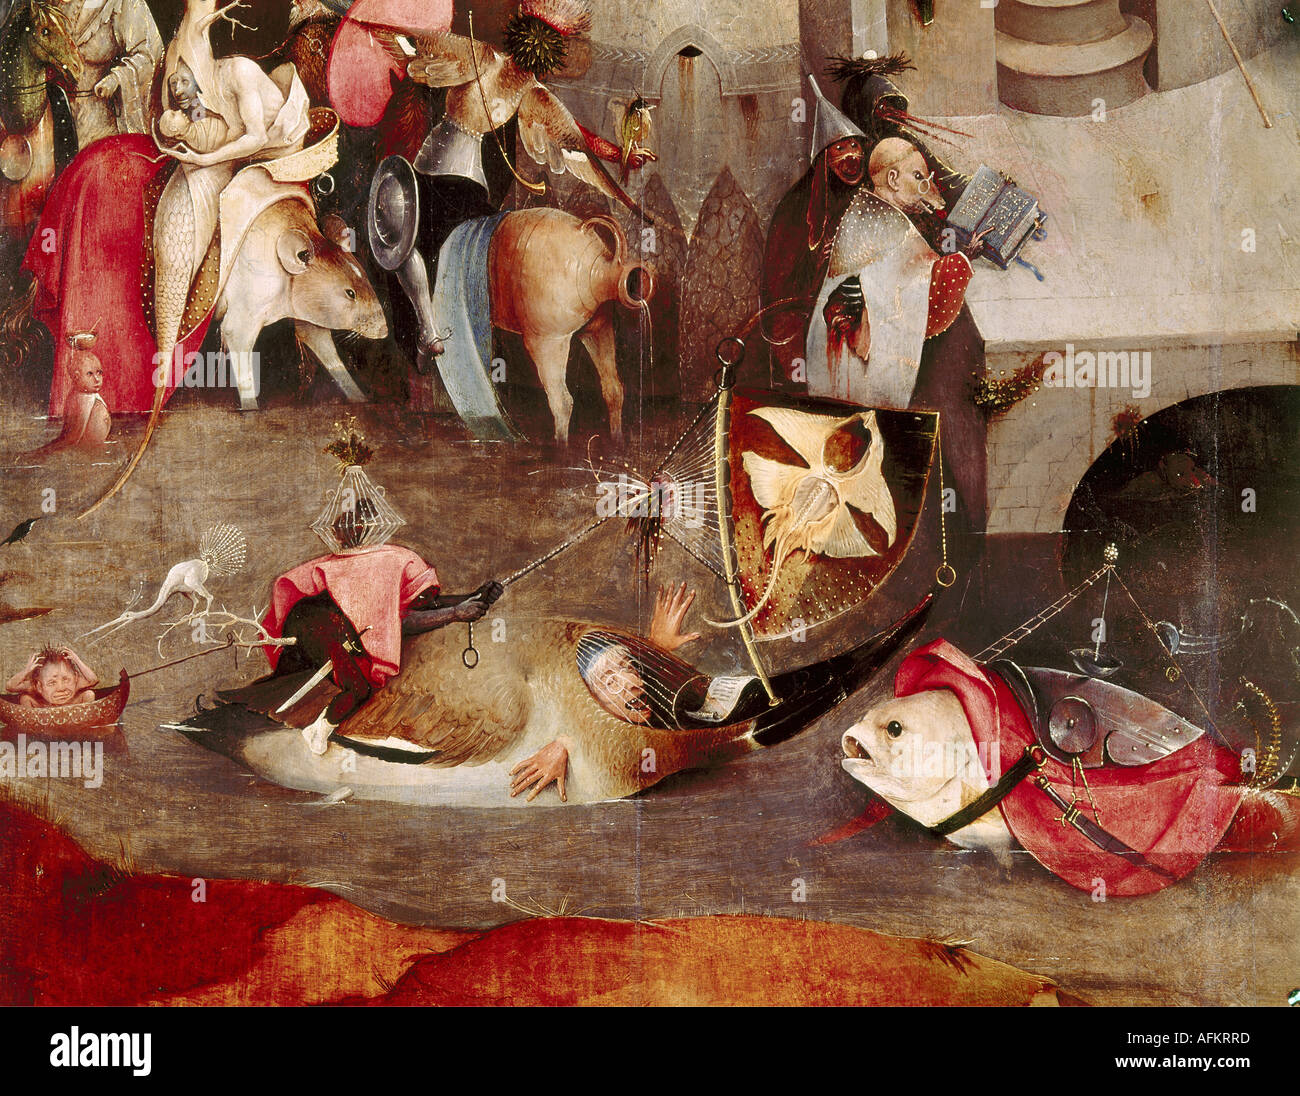 """fine arts, Bosch, Hieronymus, (circa 1450 - 1516), painting, ""the temptation of Saint Anthony"", central panel, Stock Photo"